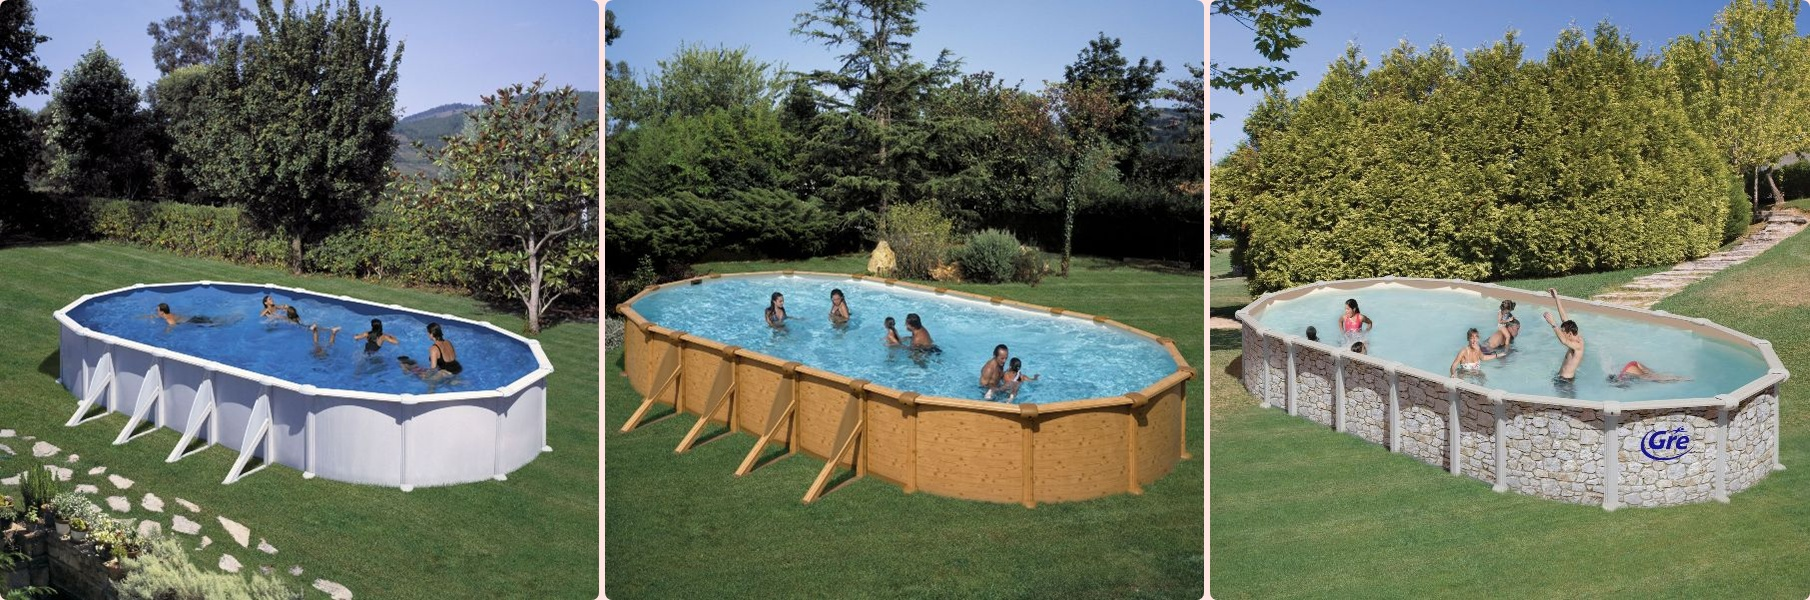 Piscine hors sol beton en kit interesting ils existe for Piscine acier enterree